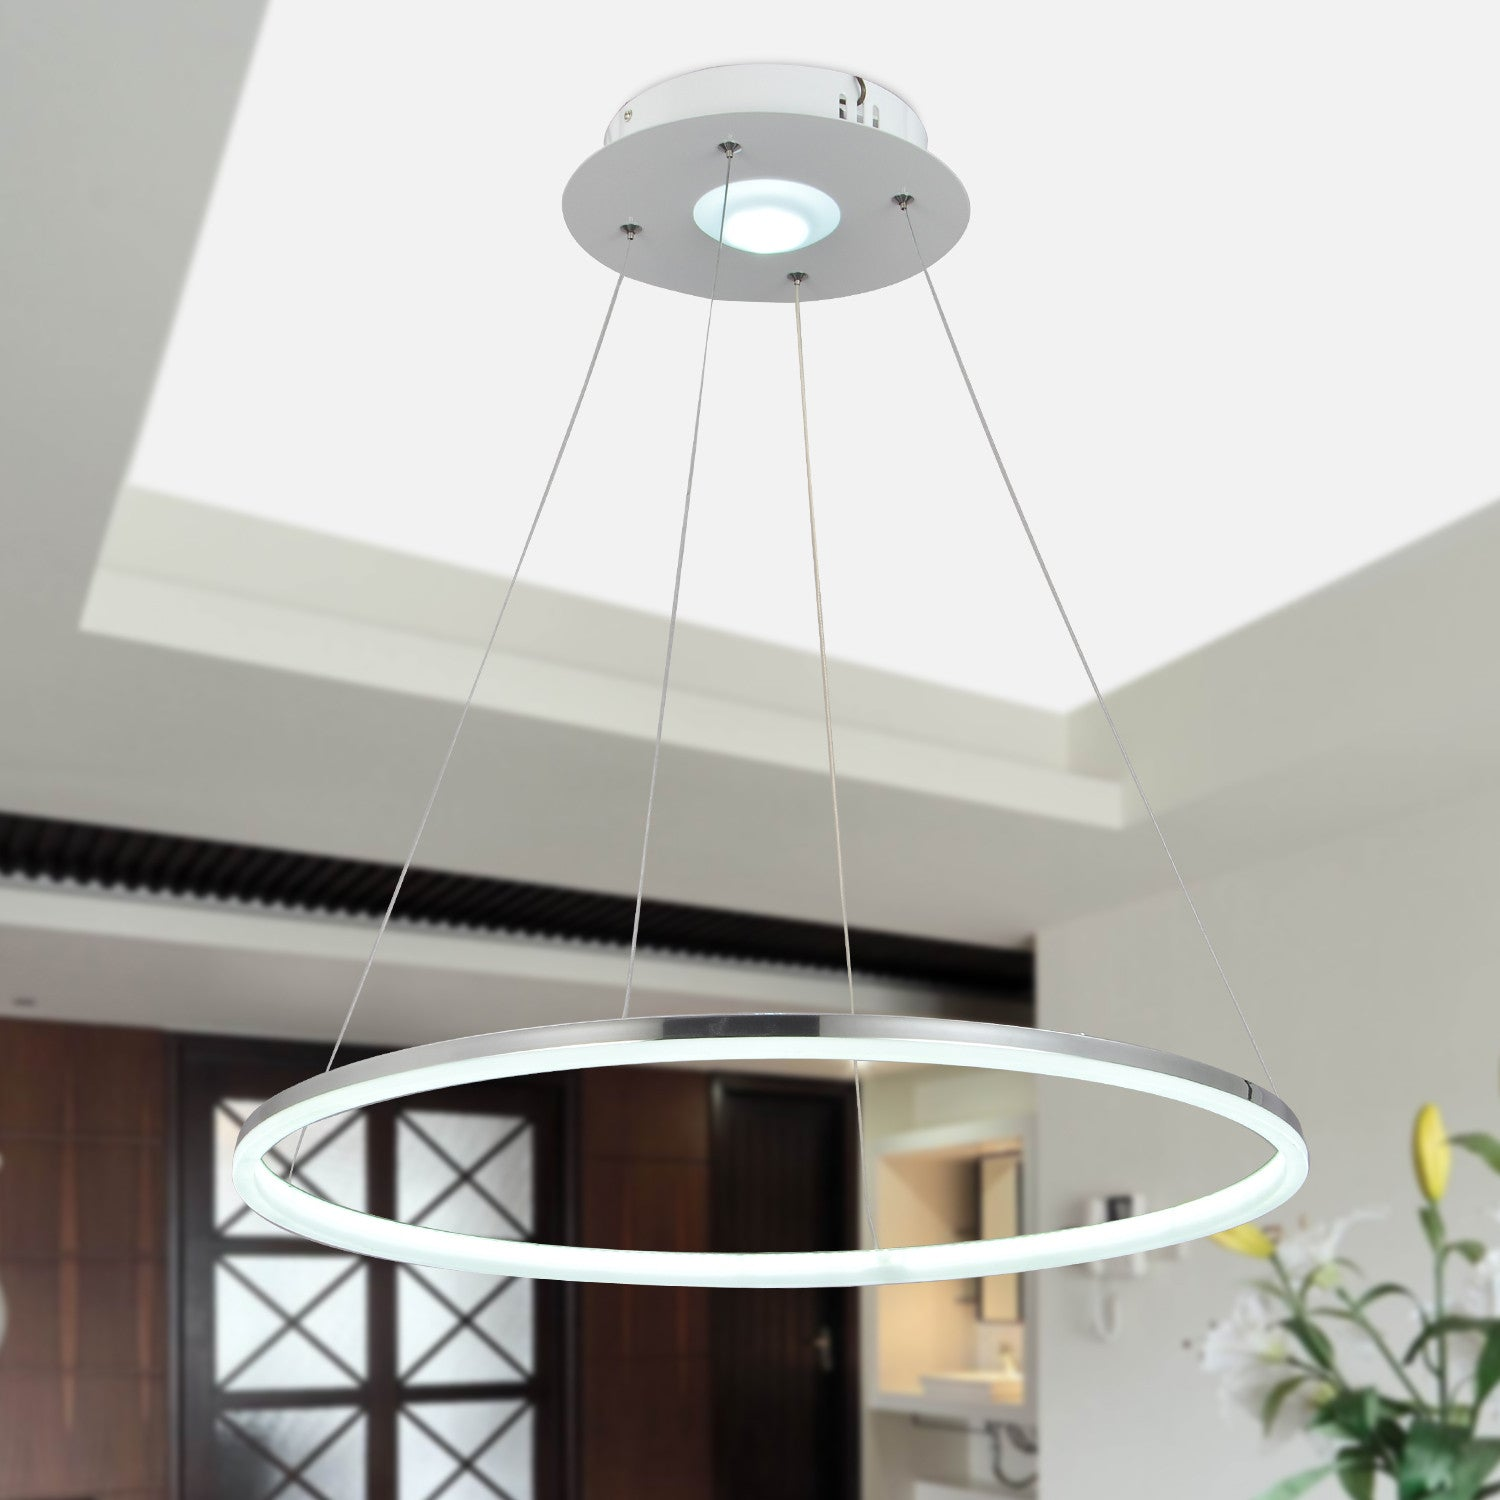 Modern nature white led acrylic pendant light remote control modern nature white led acrylic pendant light remote control included max 35w chrome finish mozeypictures